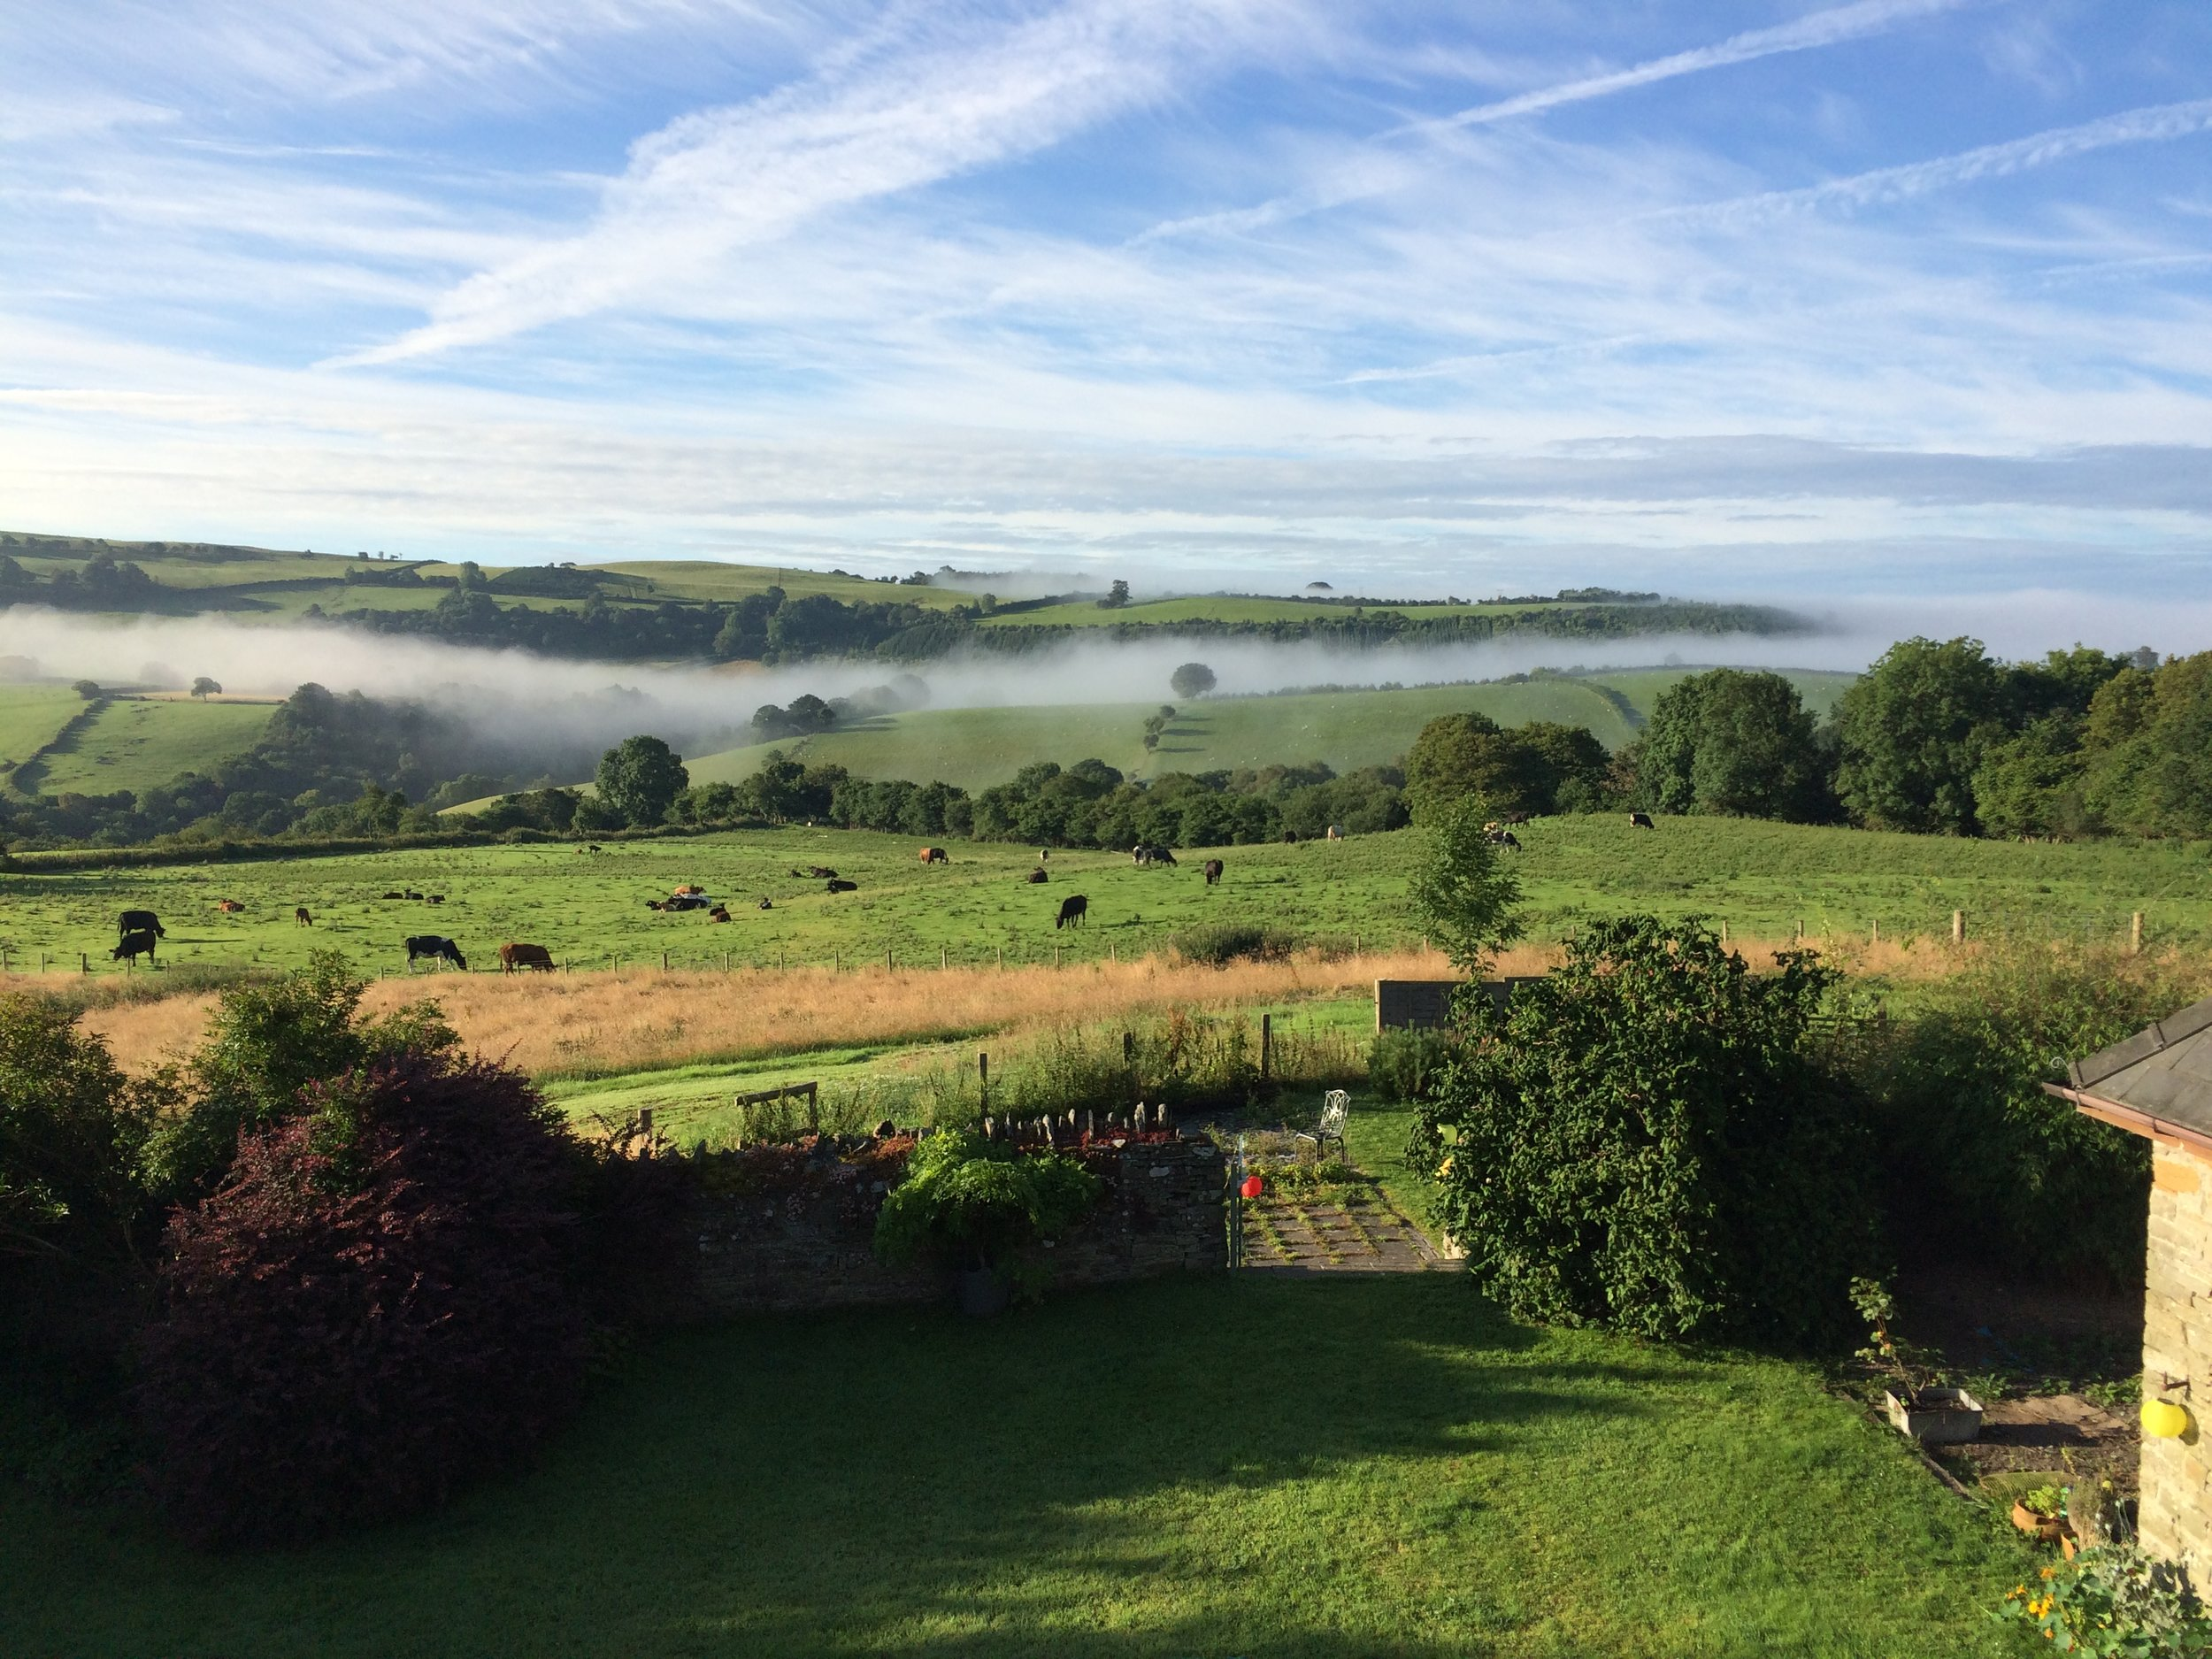 Early morning mist in the valley.